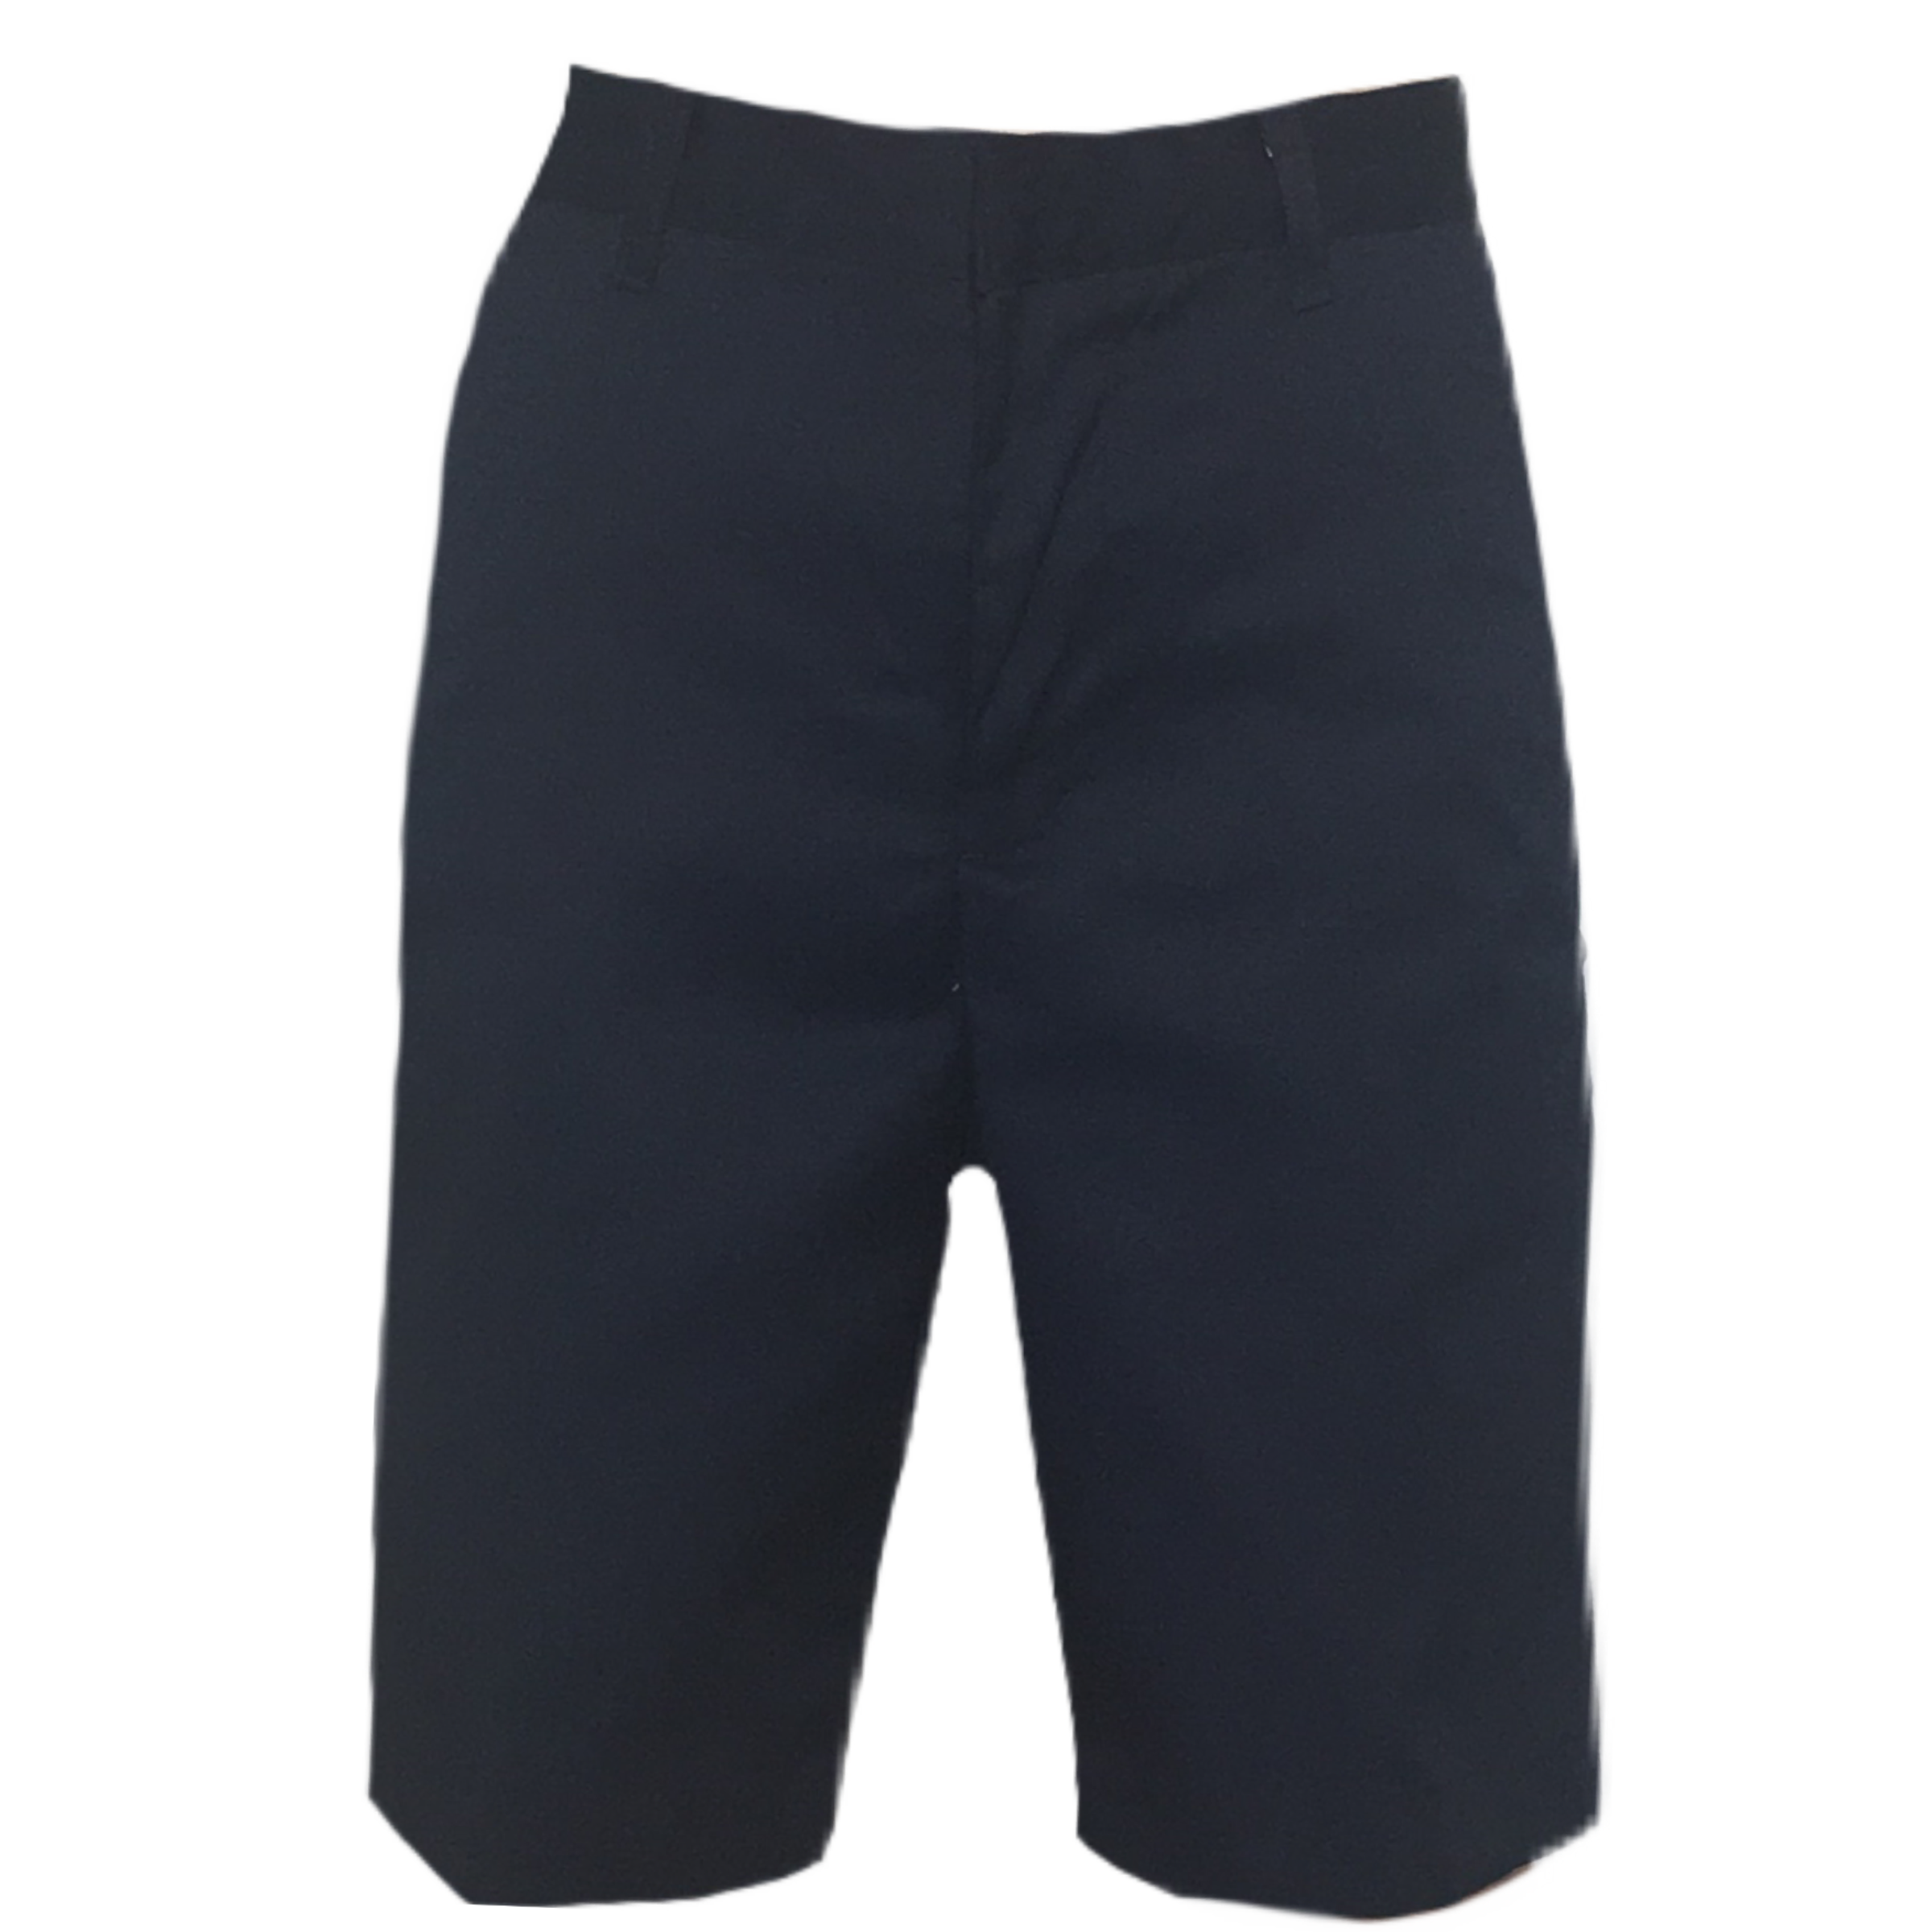 BOYS - VALUE LINE - Unisex Short Flat Front Regular